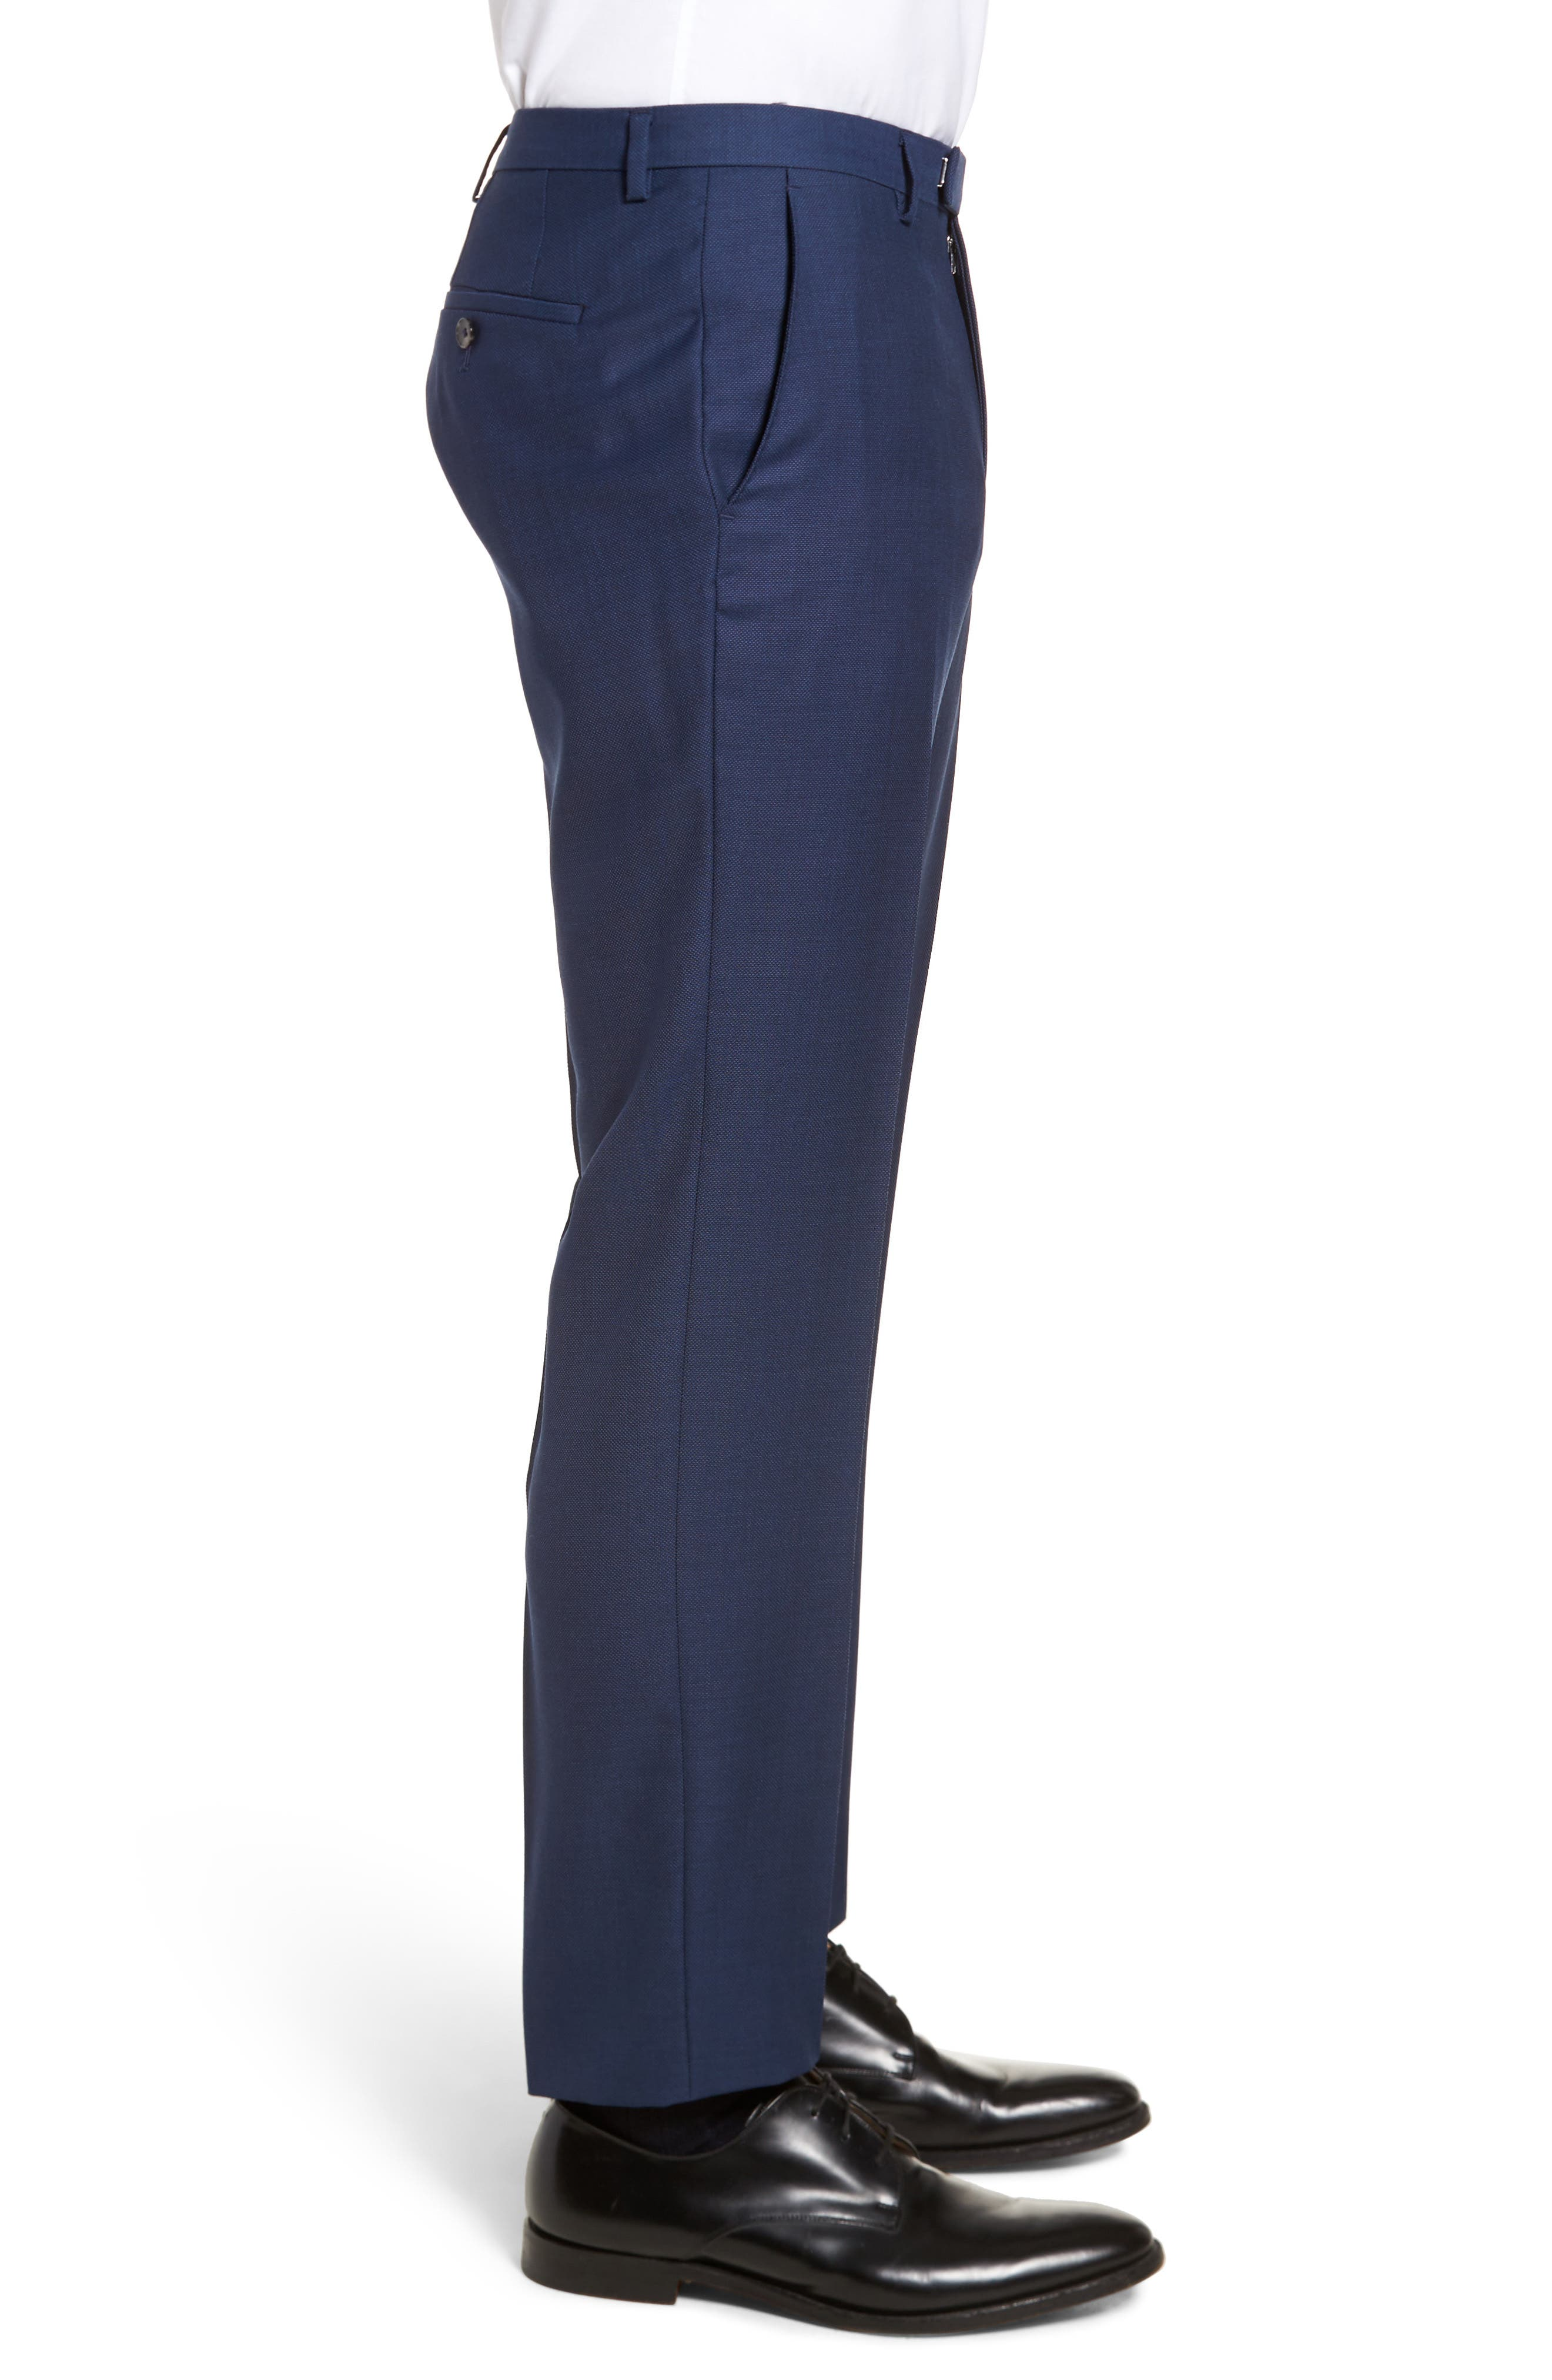 Leenon Flat Front Regular Fit Solid Wool Trousers,                             Alternate thumbnail 3, color,                             410